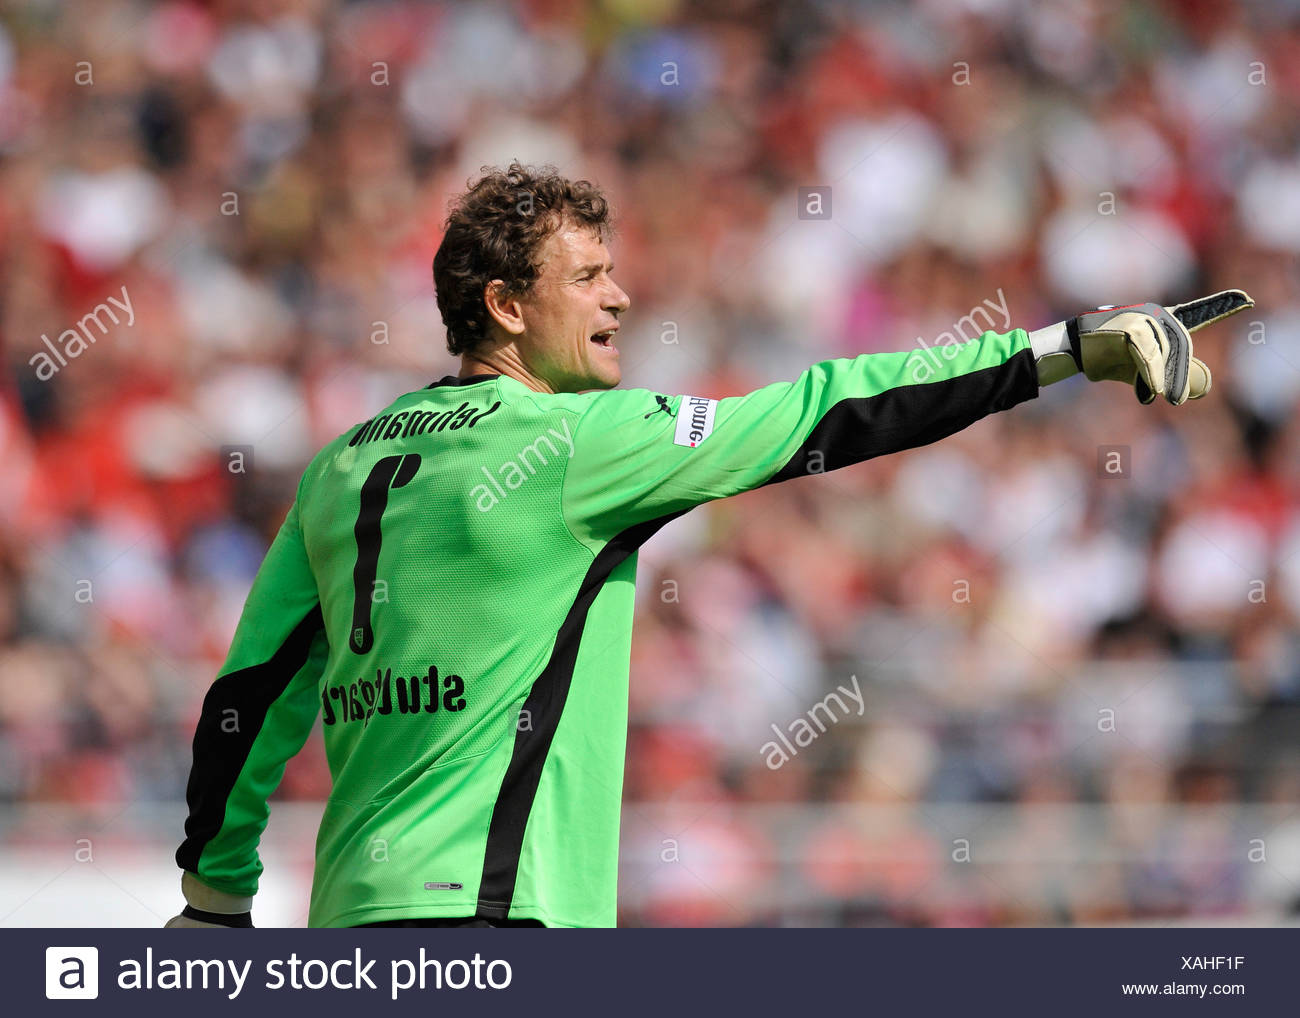 Goalkeeper Jens Lehmann, VfB Stuttgart, conducting defensive - Stock Image